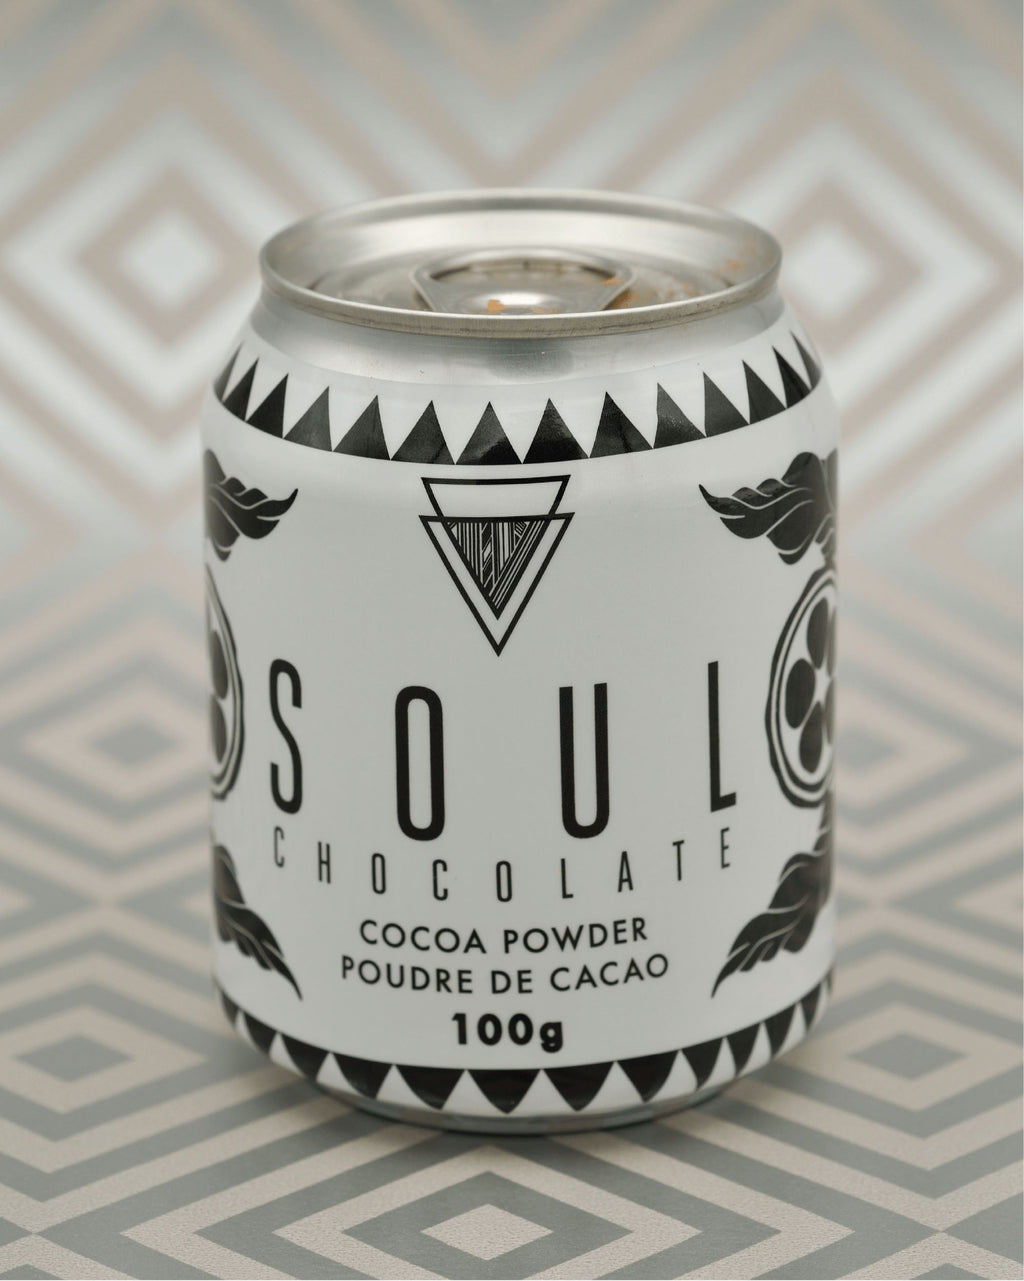 Here is a photo of our Cocoa Powder Tin, available at Soul Chocolate